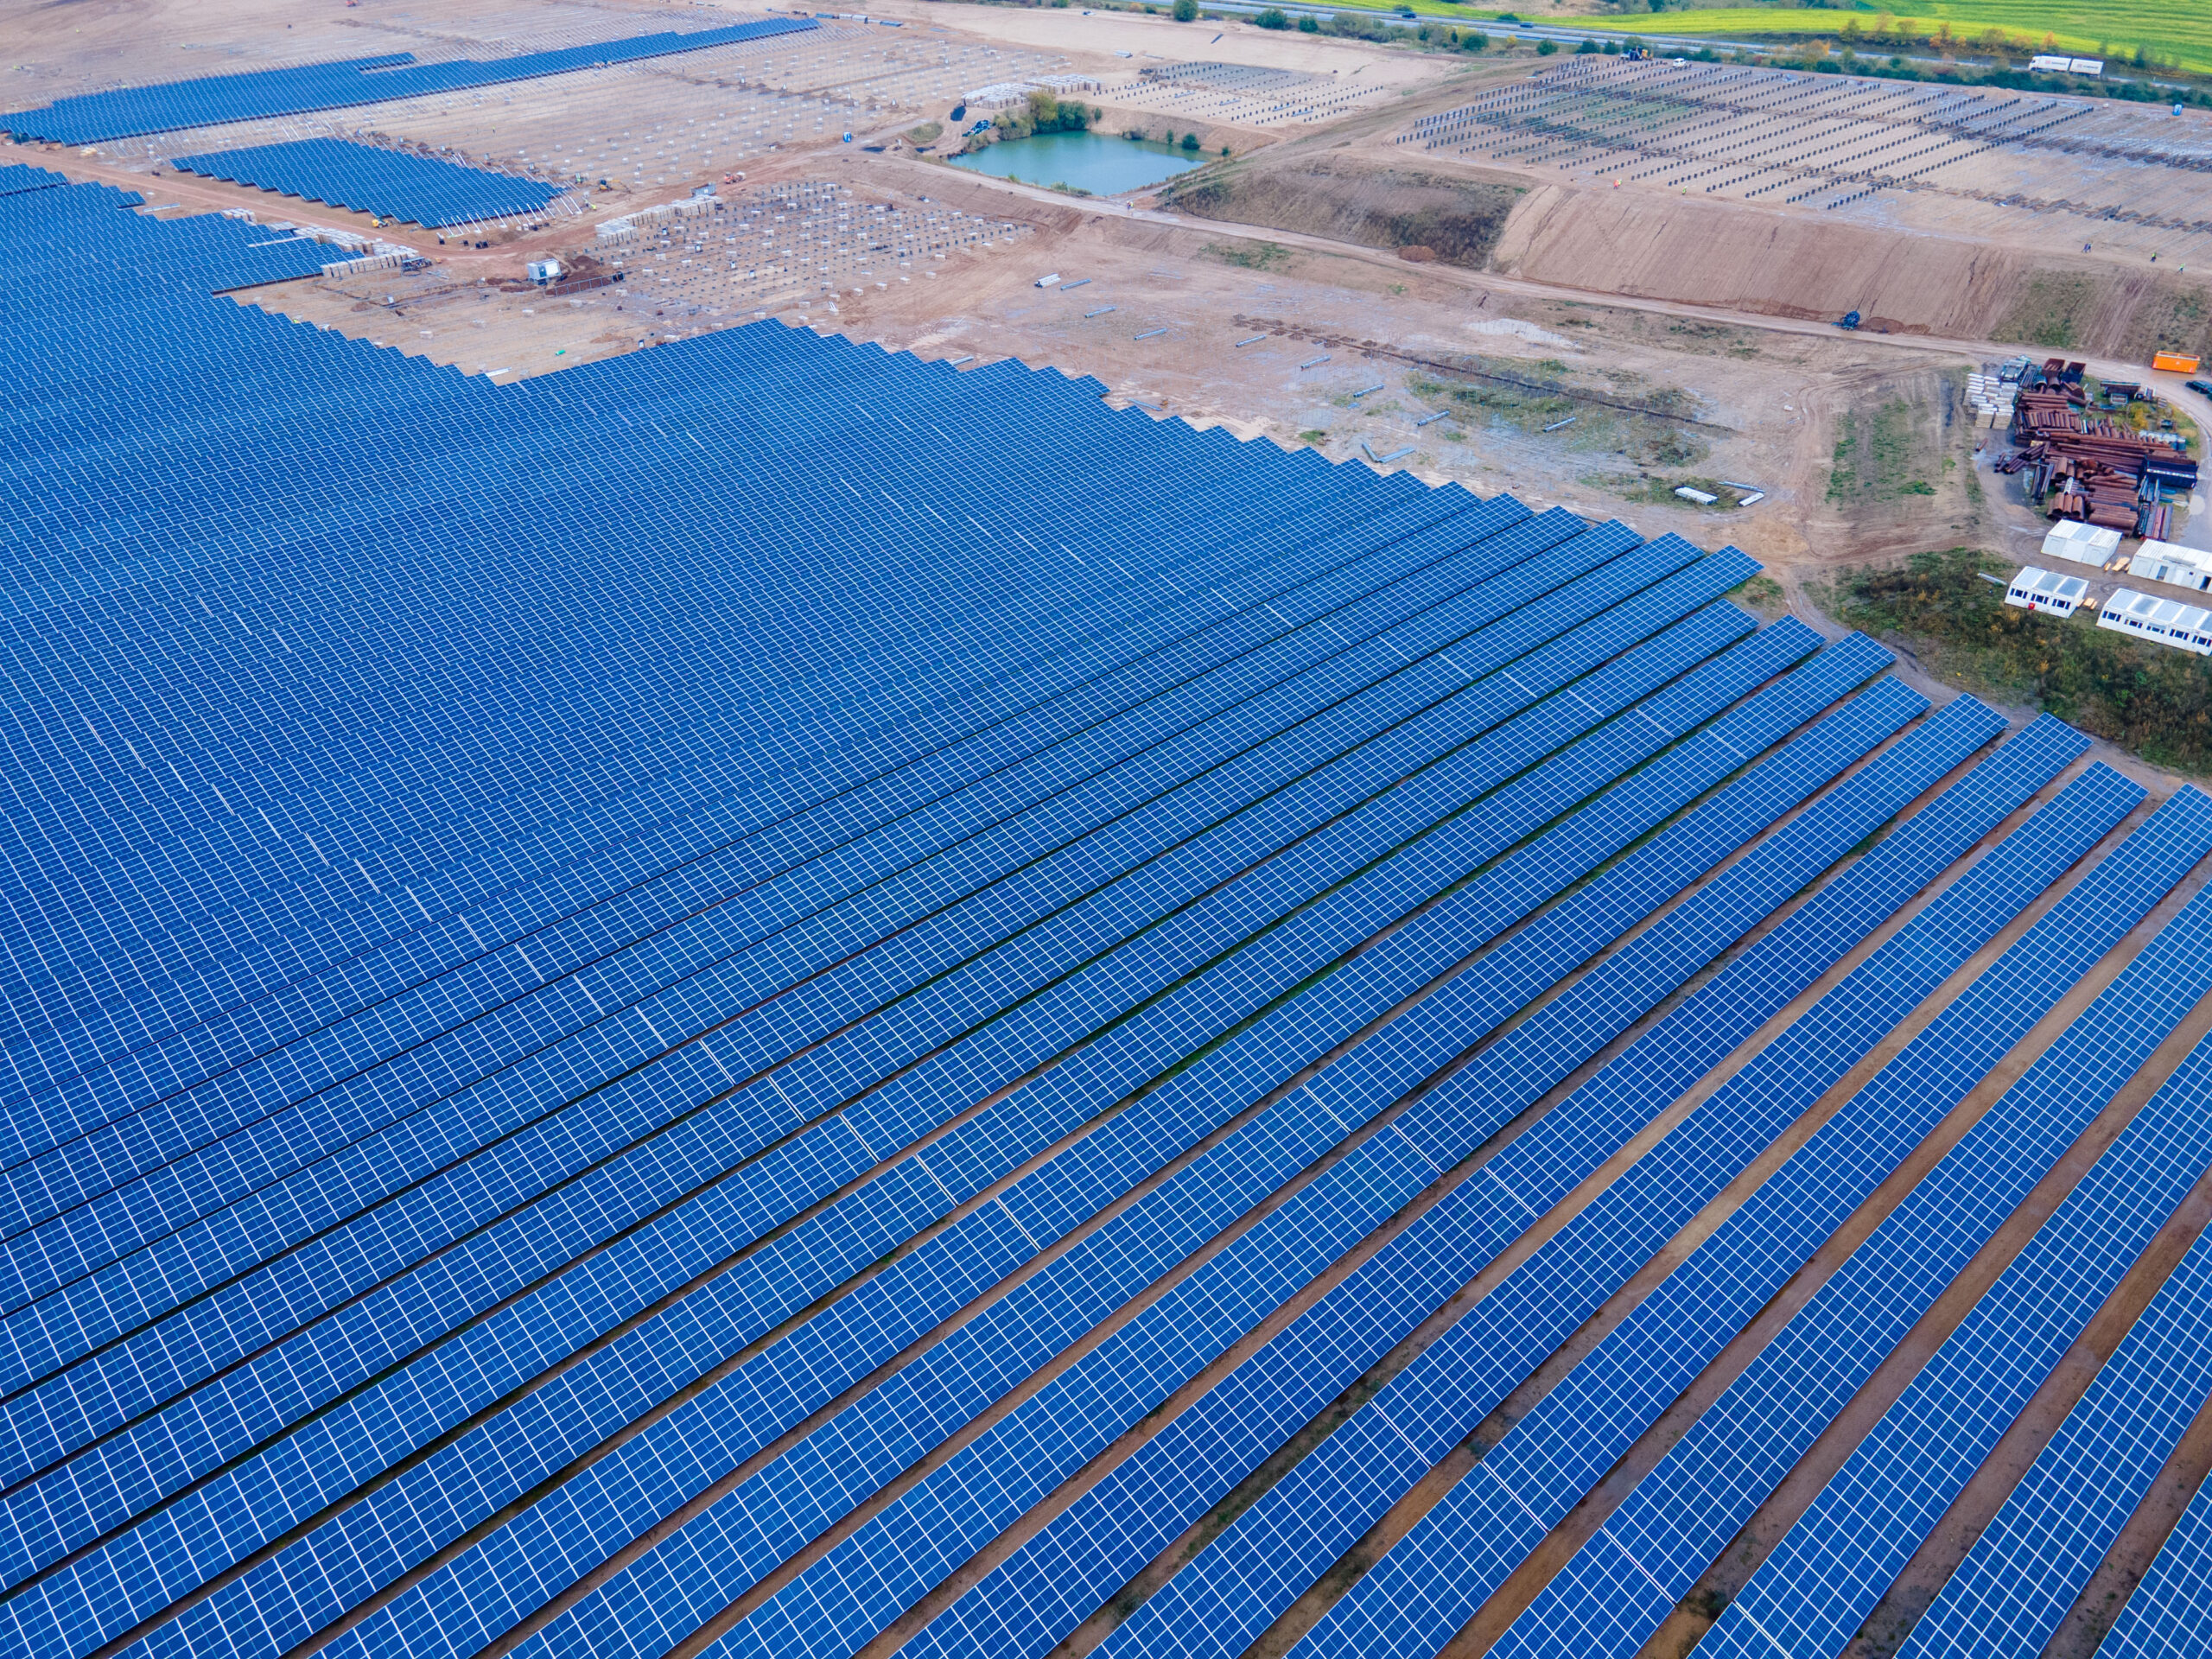 Employees of the Goldbecksolar company stand in a solar park. Credit: Jens Büttner/picture alliance via Getty Images